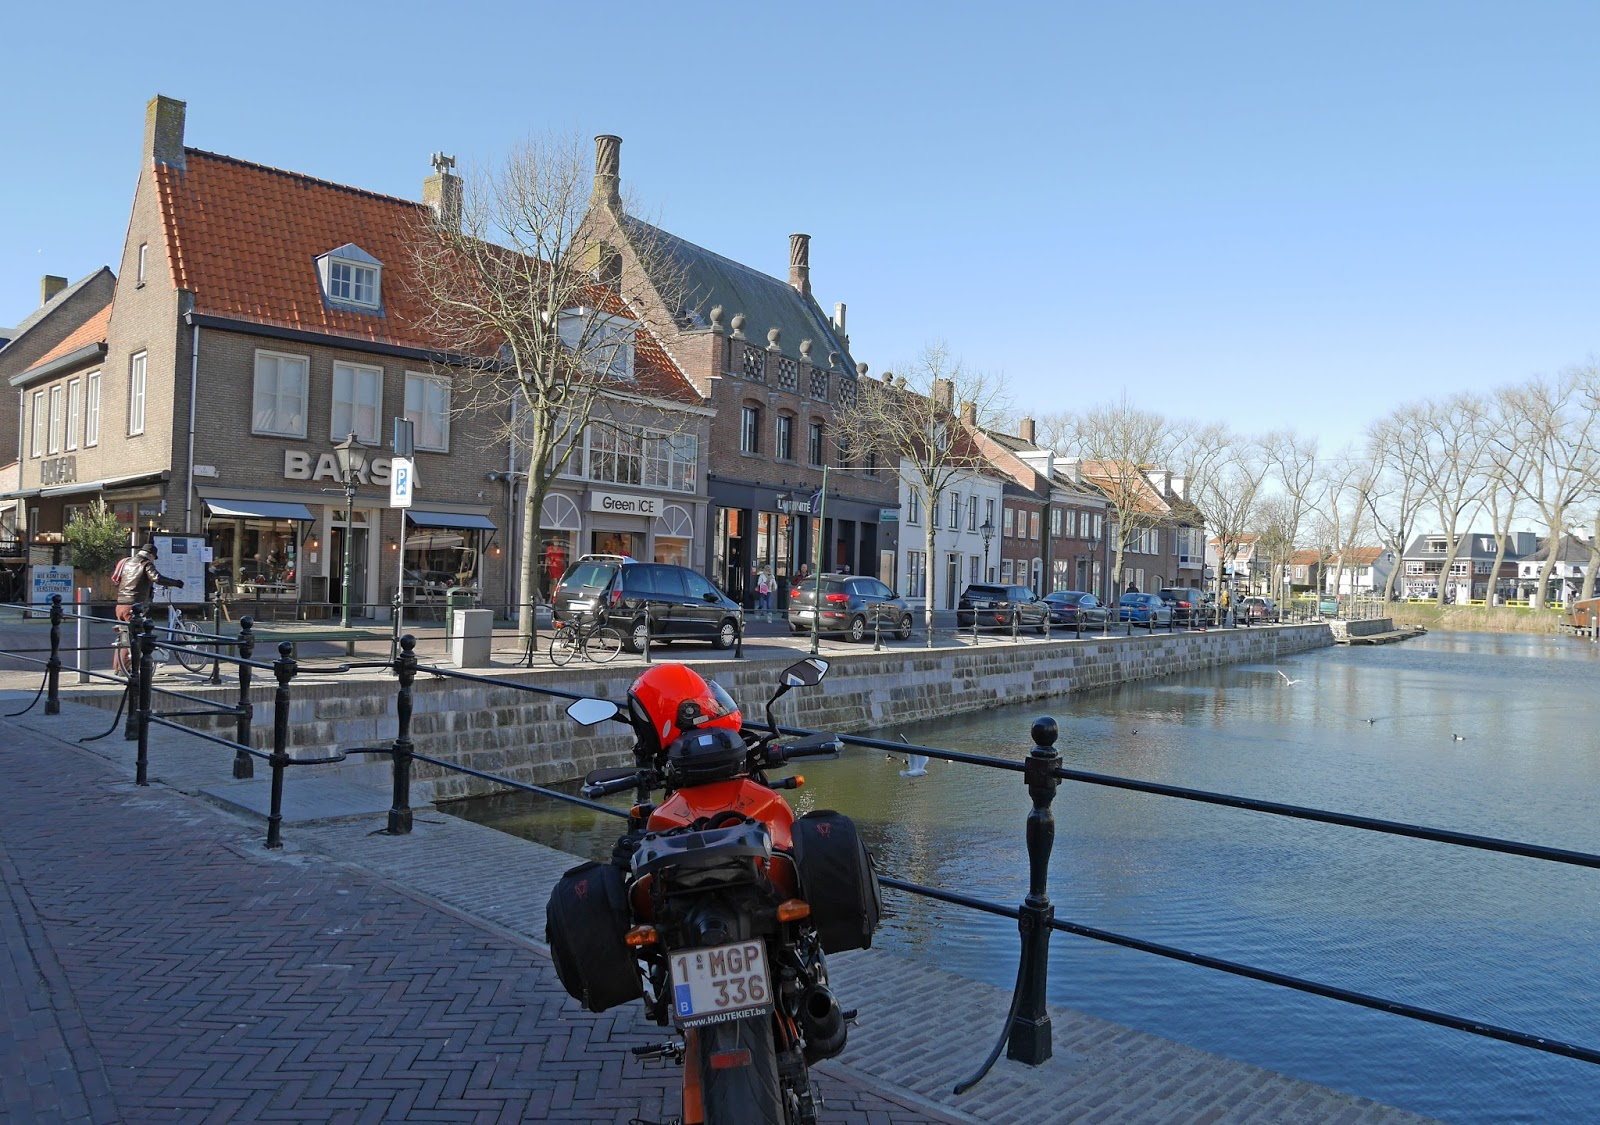 The canal in Sluis, The Netherlands